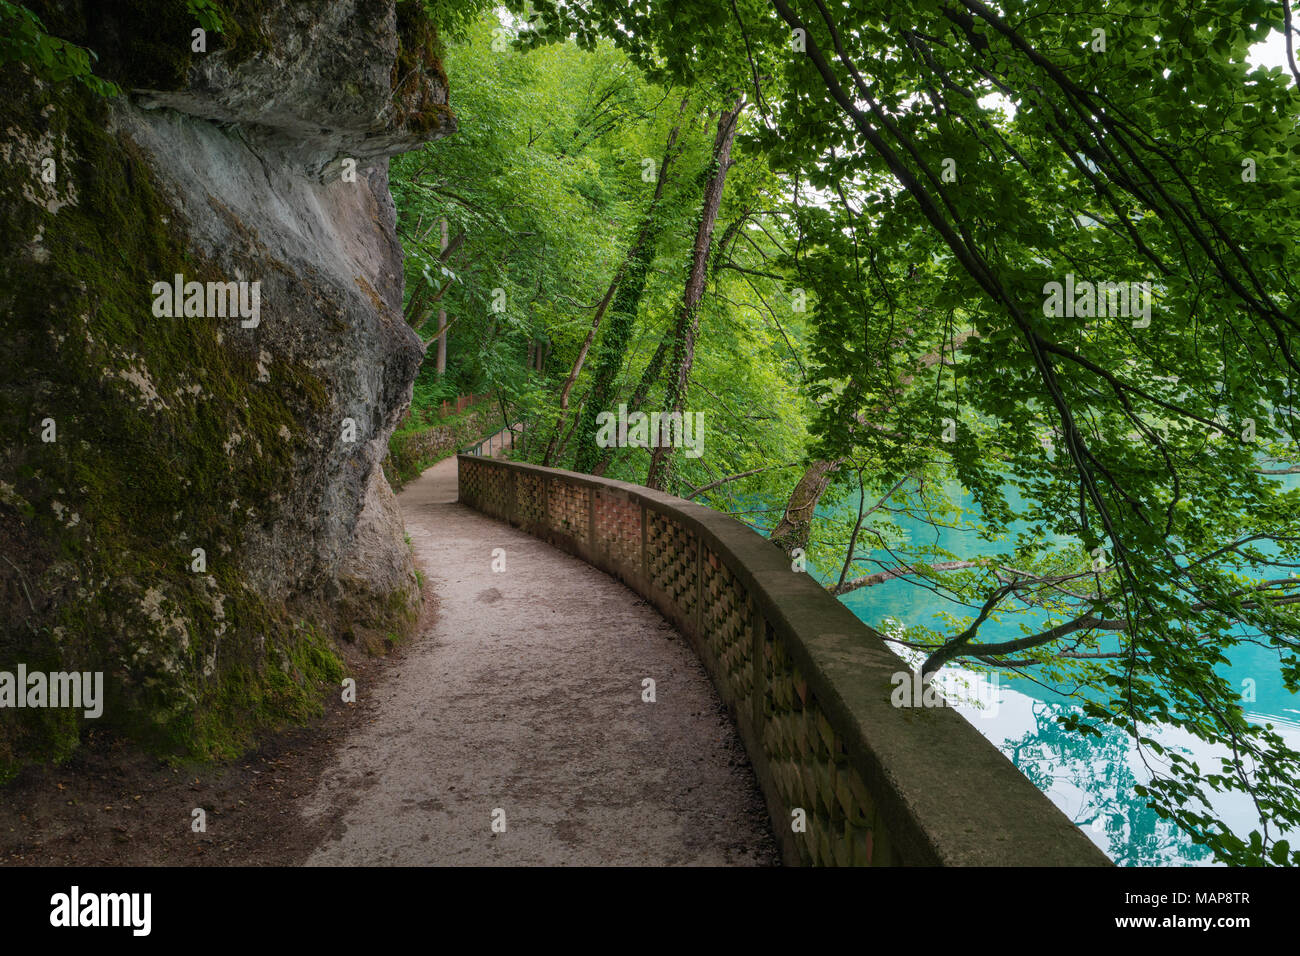 Hiking trail in forest, Lake Bled, Alps, Slovenia. Pathway lane way, green trees. Beautiful road, alley in park. Path in summer forest. Empty walkway. Stock Photo